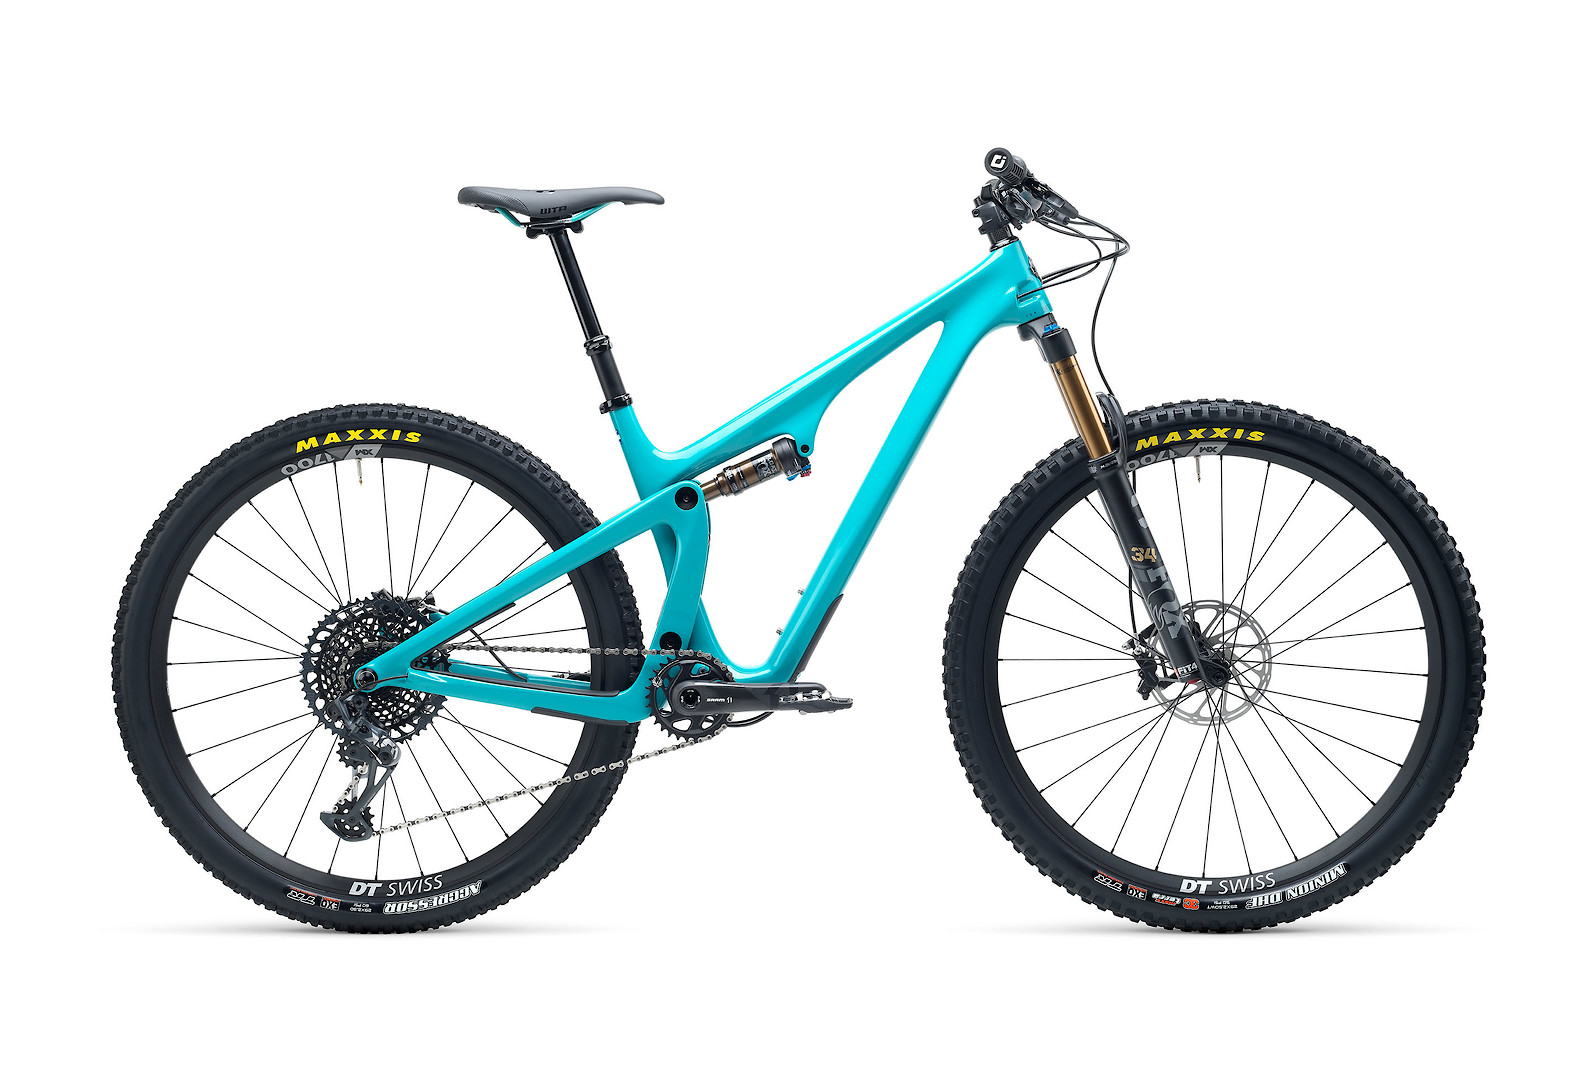 Yeti SB115 T-Series T2 29er Mountain Bike 2021 Turquoise